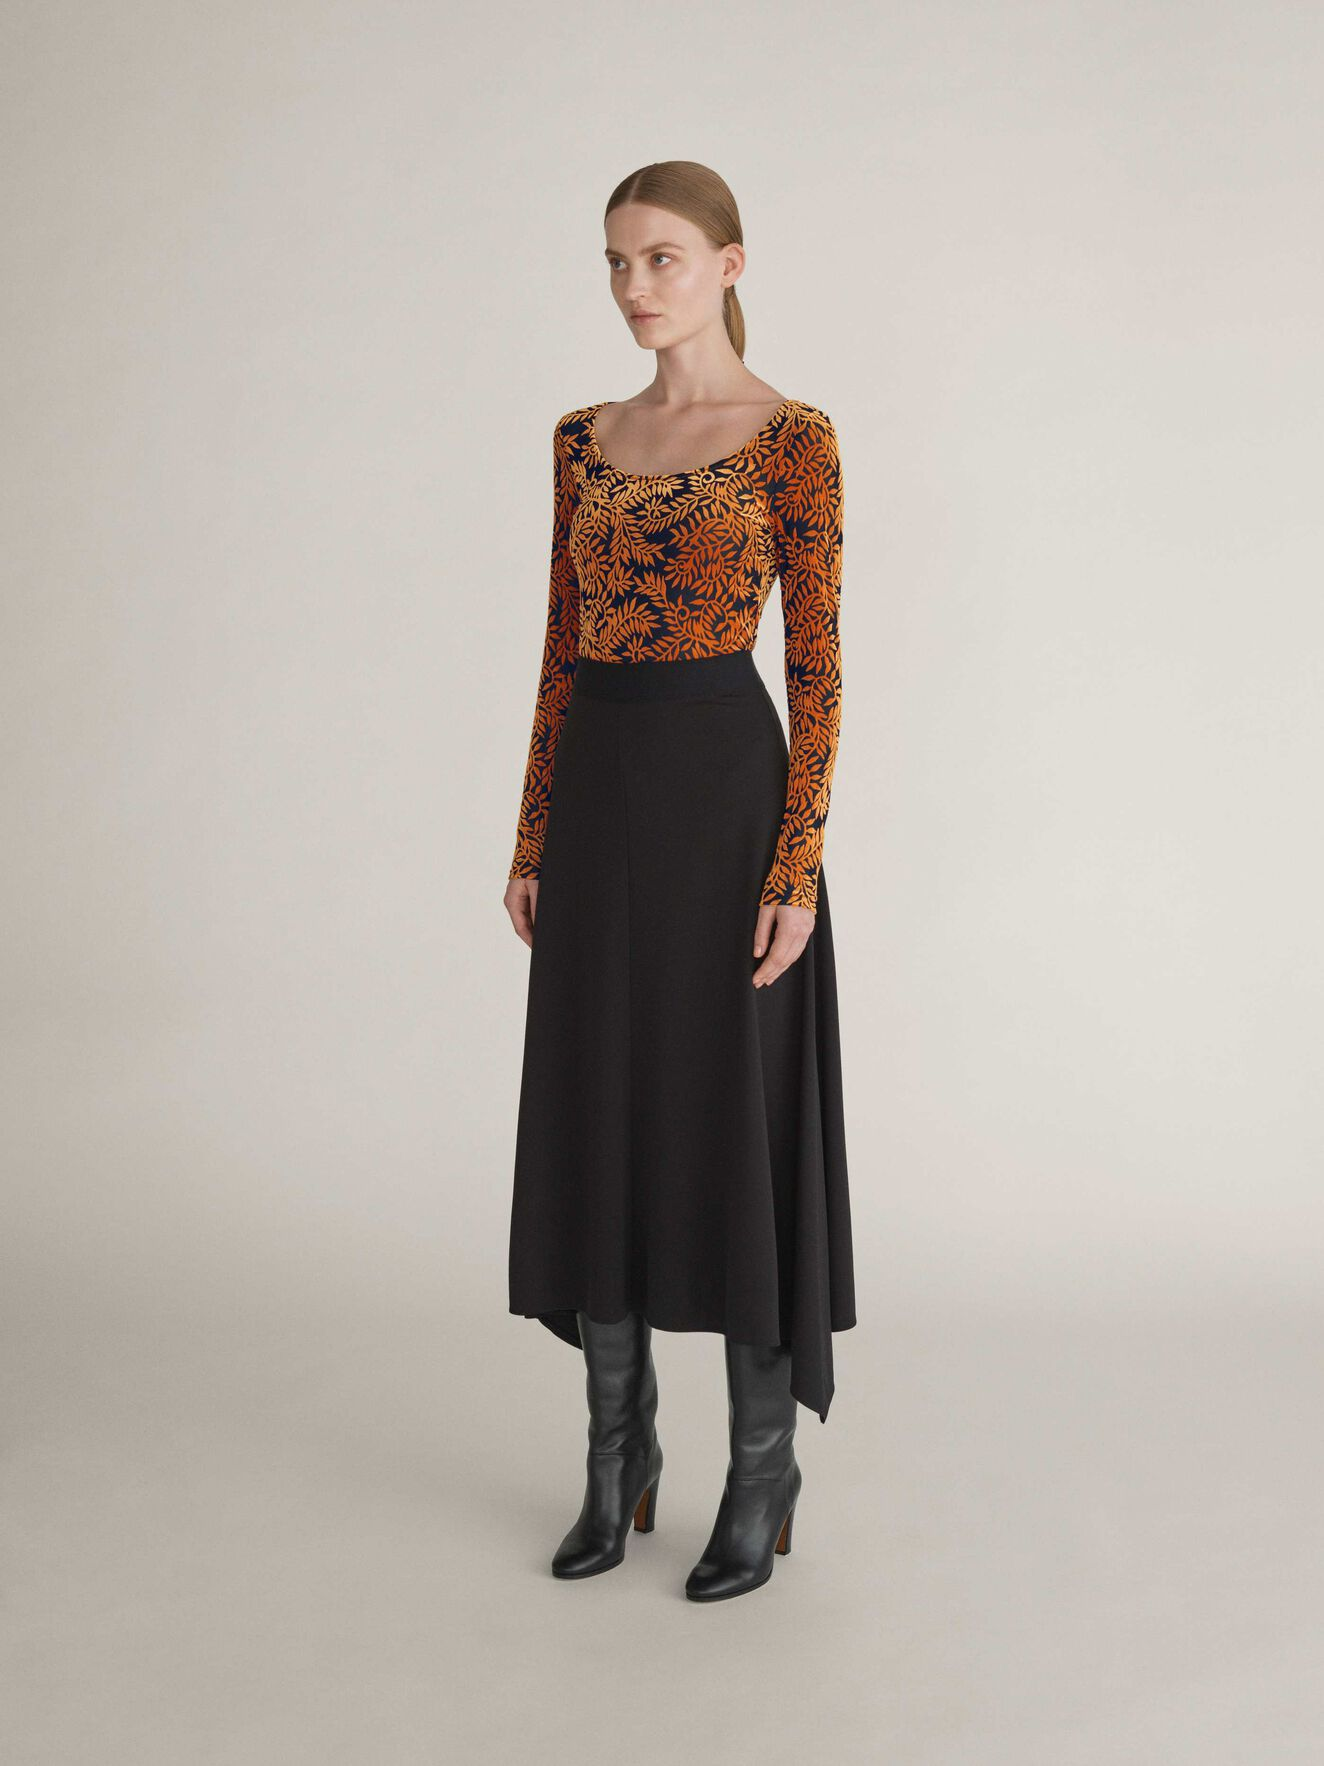 Mable Skirt in Midnight Black from Tiger of Sweden